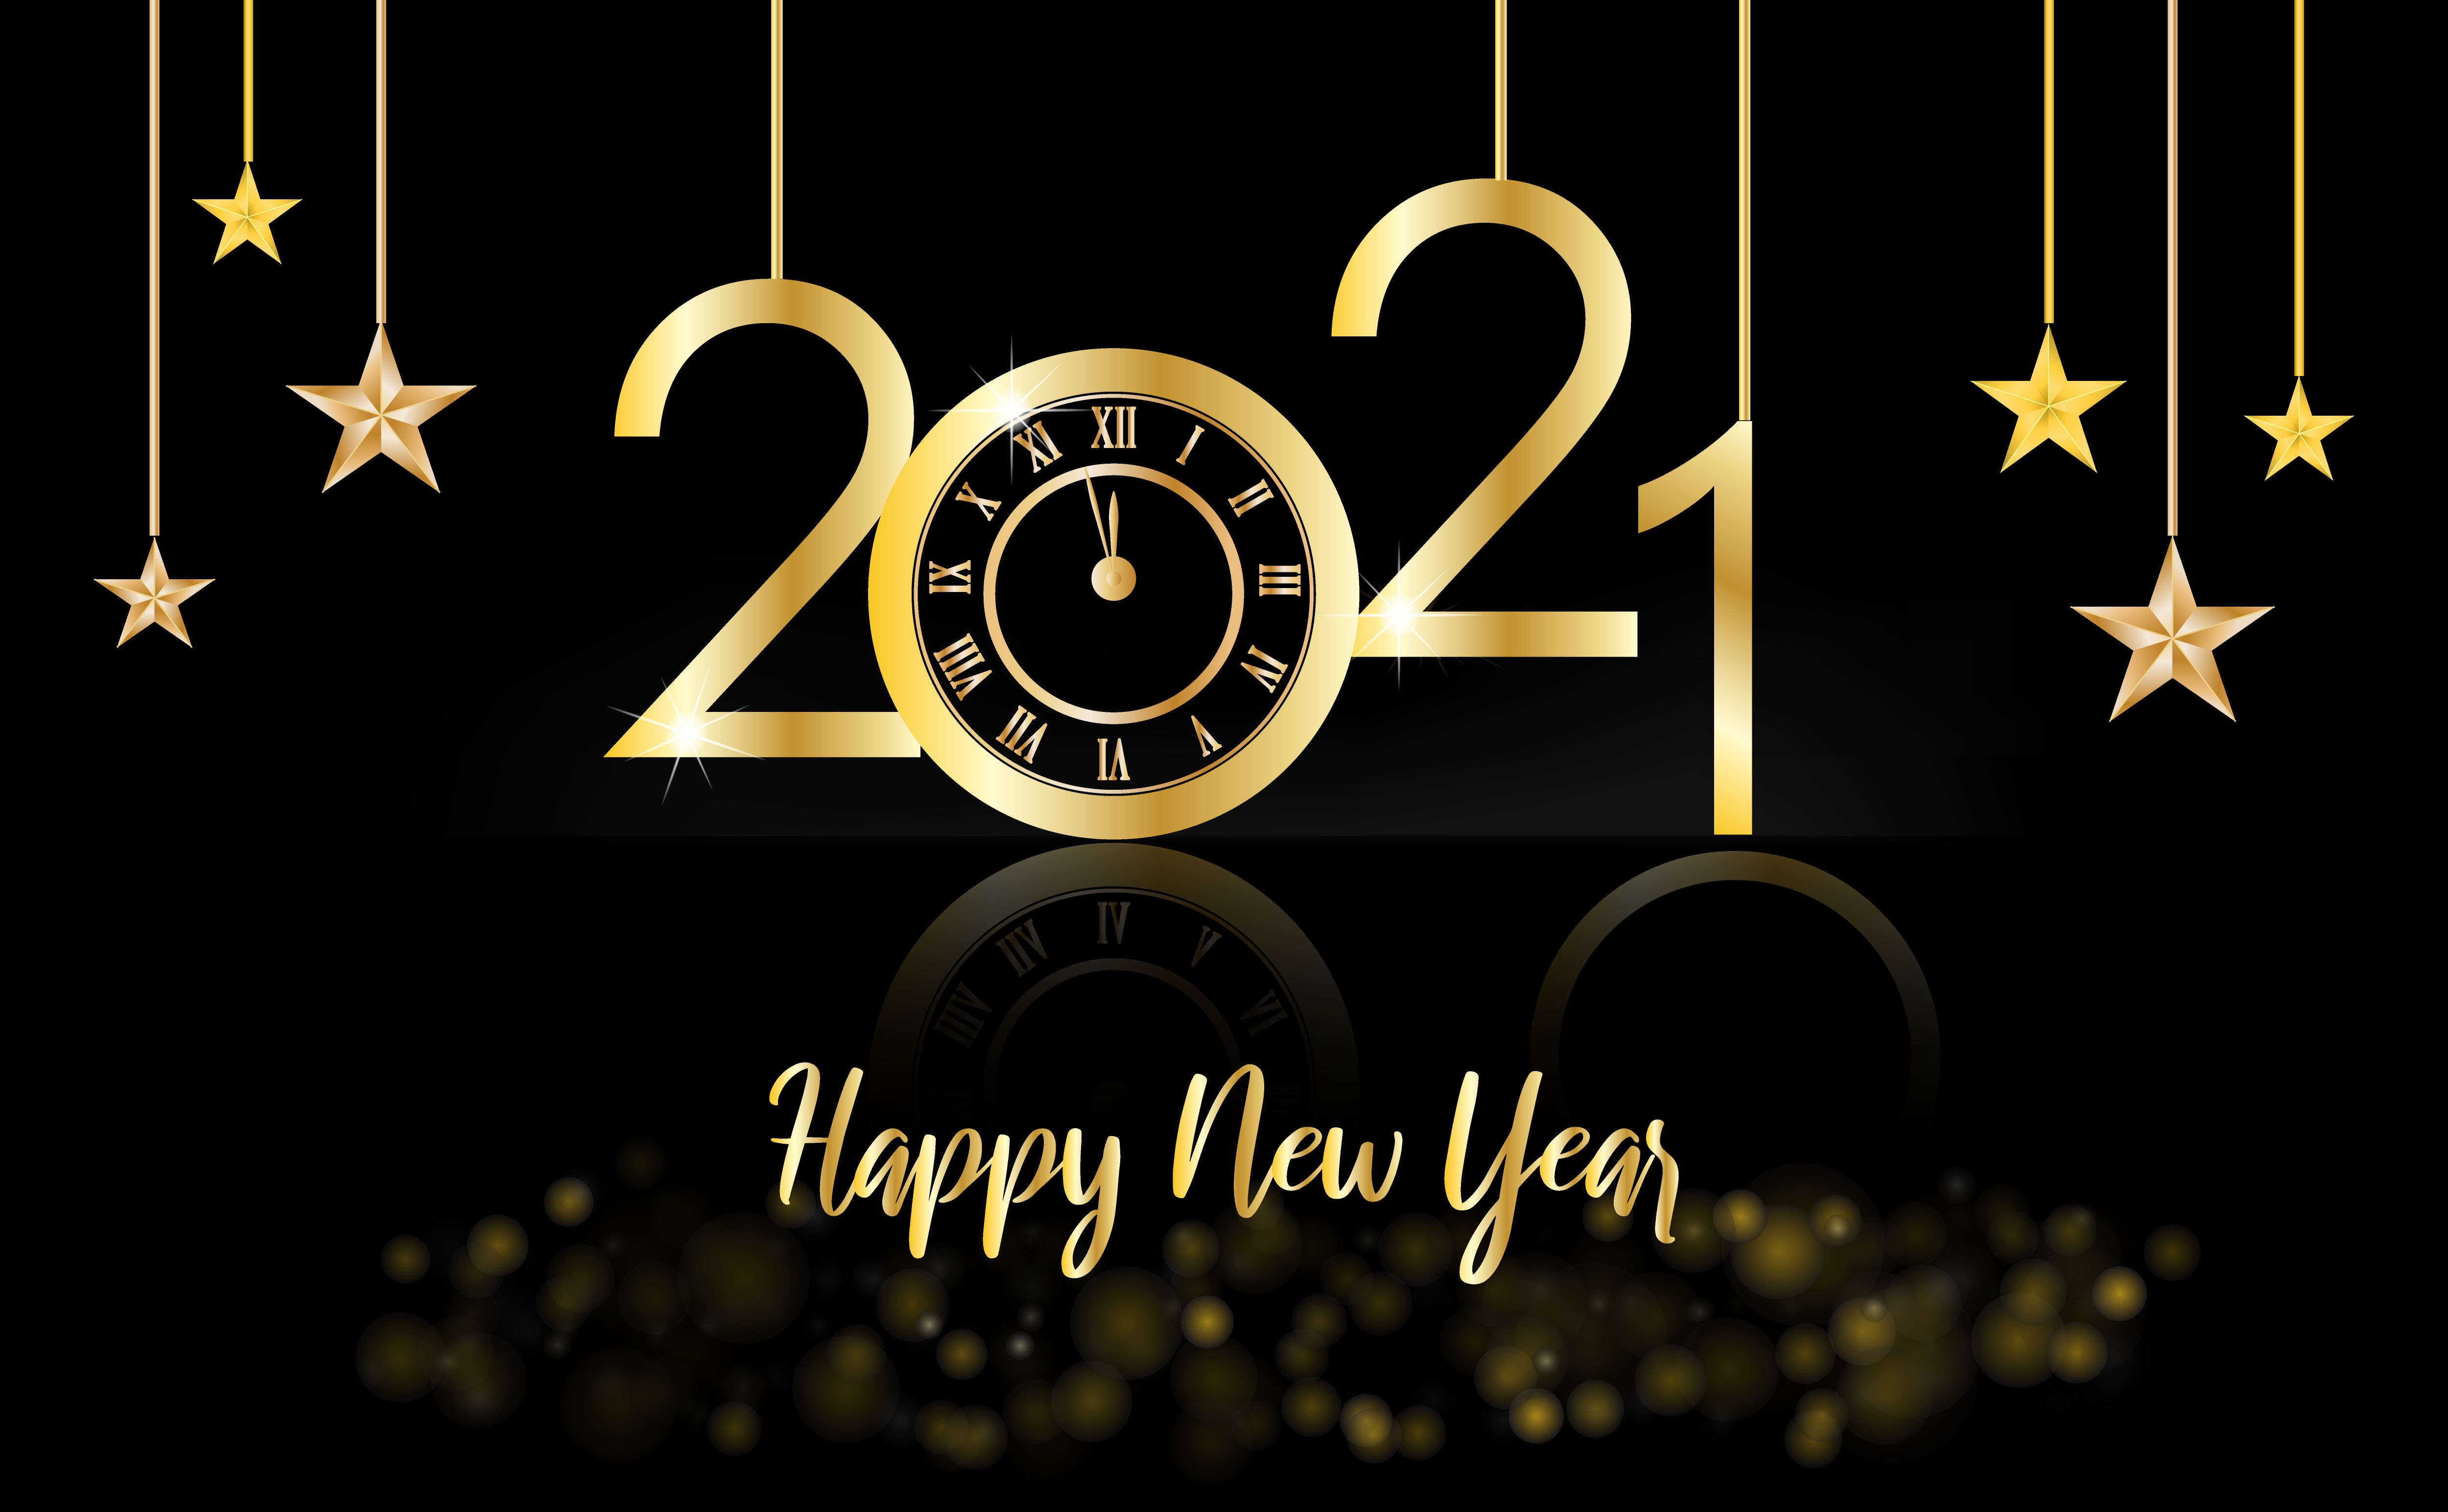 Happy New Year, 2021 gold and black background with a clock and stars - Download Free Vectors ...